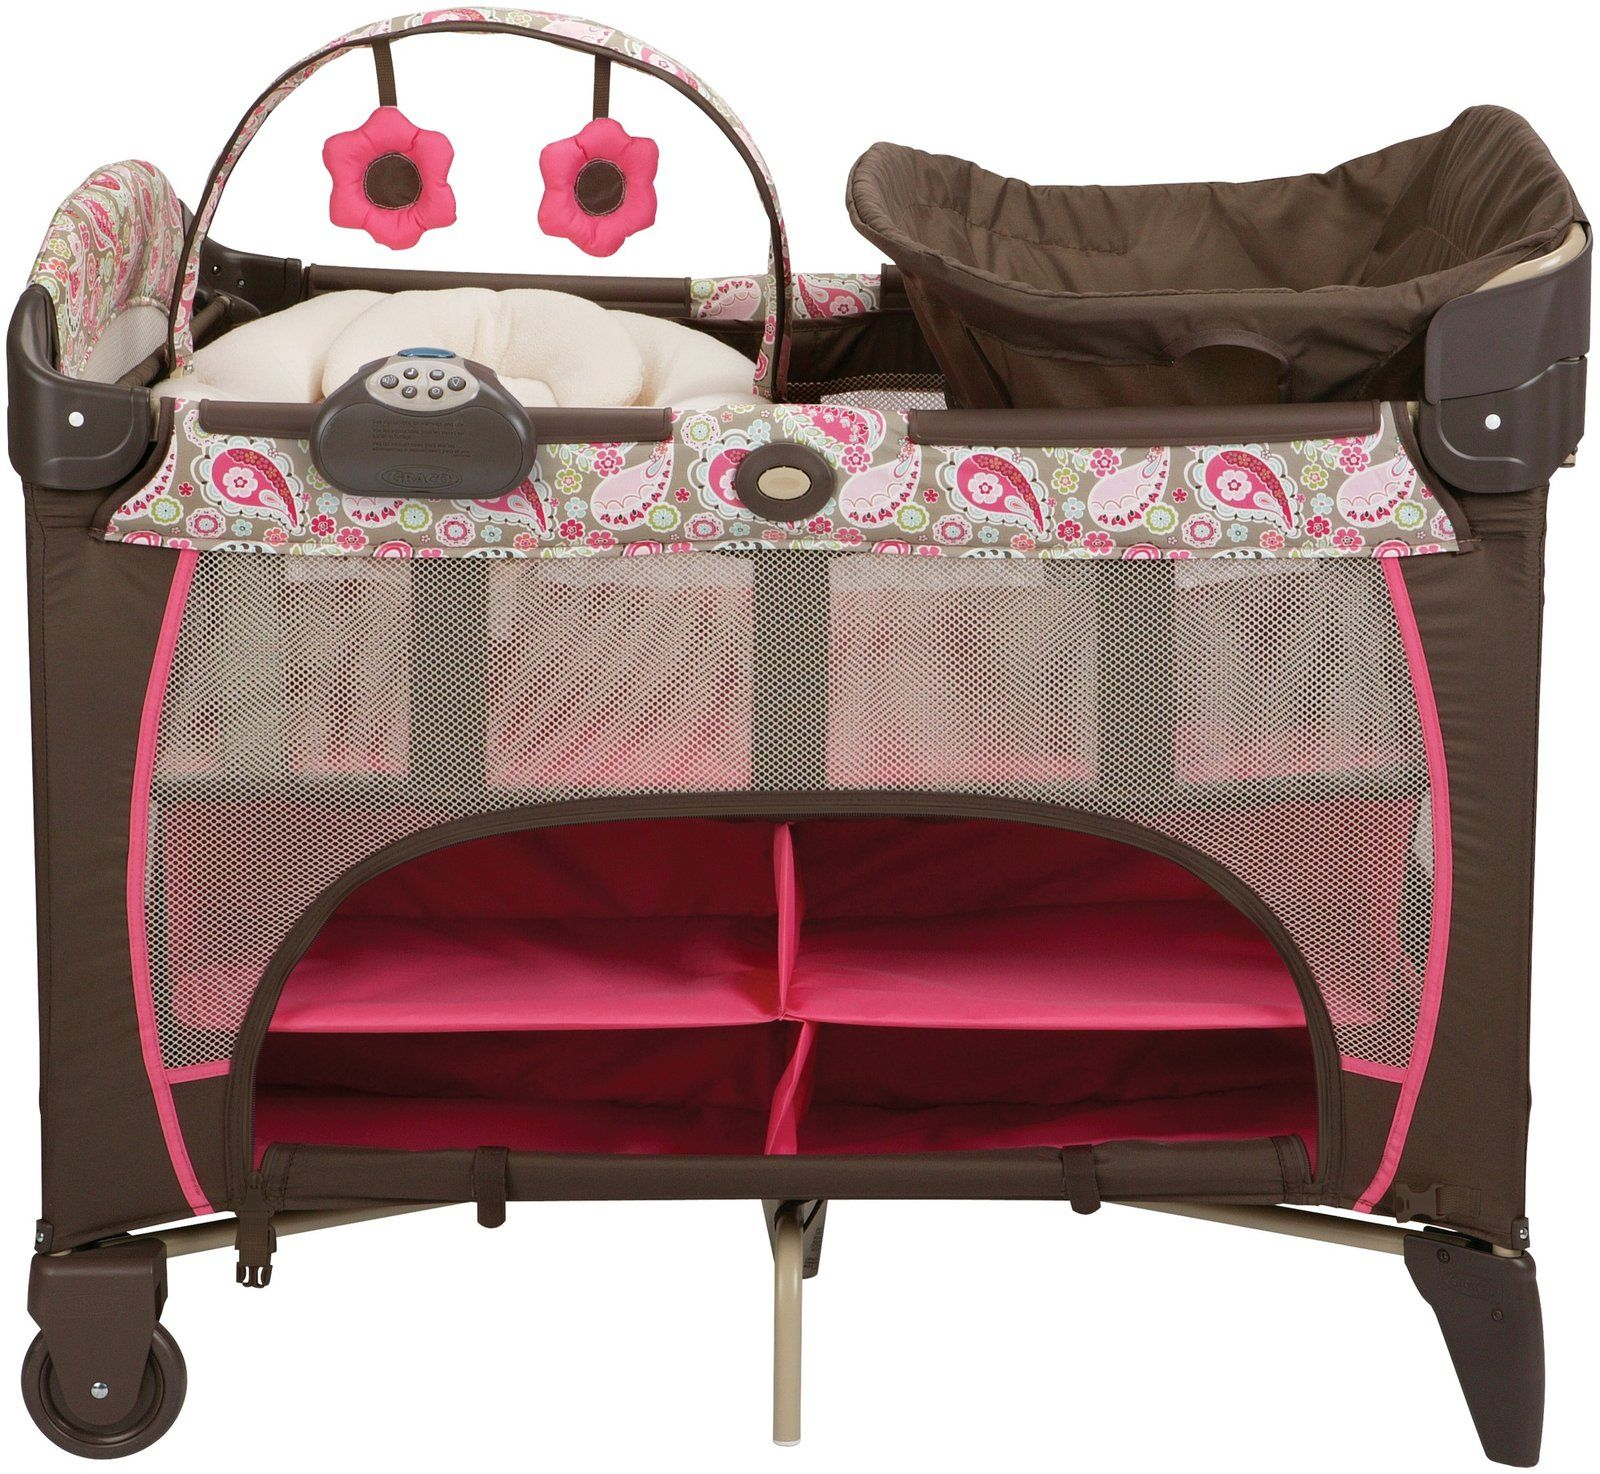 44ffb8004 Graco Newborn Napper Pack N Play Deluxe - Jacqueline - Best Price ...